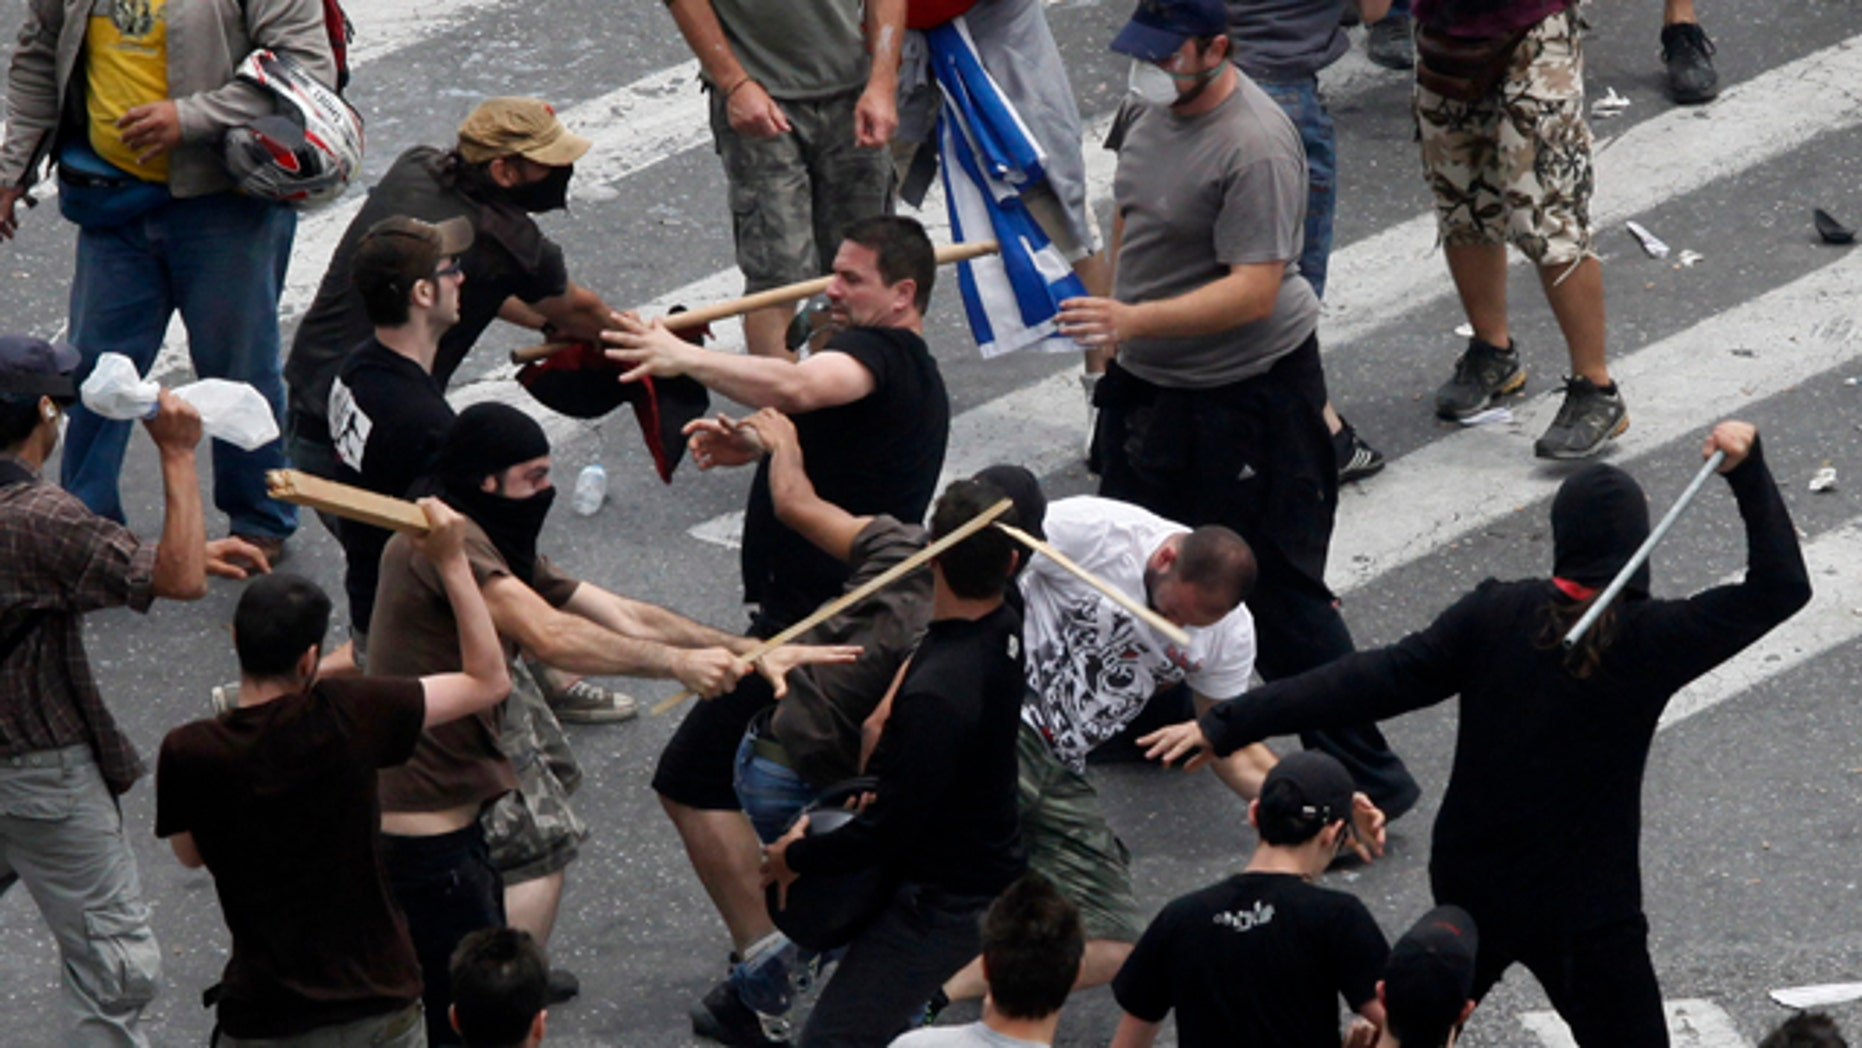 June 15: Left and right wing demonstrators fight at Syntagma square in front of the Greek Parliament in central Athens, during a rally against the new austerity measures.